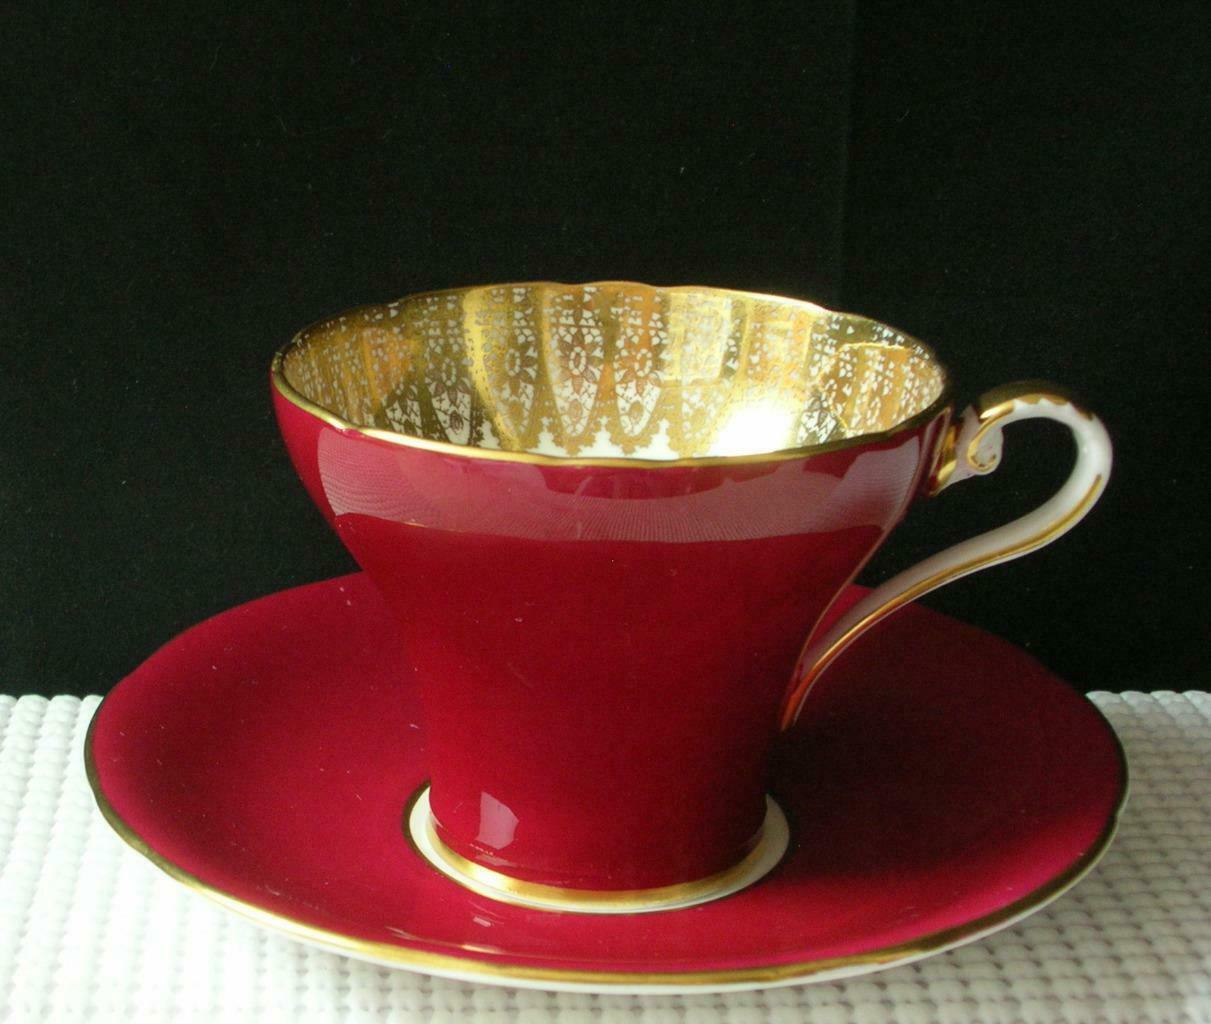 Vintage RED Aynsley FLAT TEA CUP & SAUCER Gold Filigree #1713 China England EUC image 2